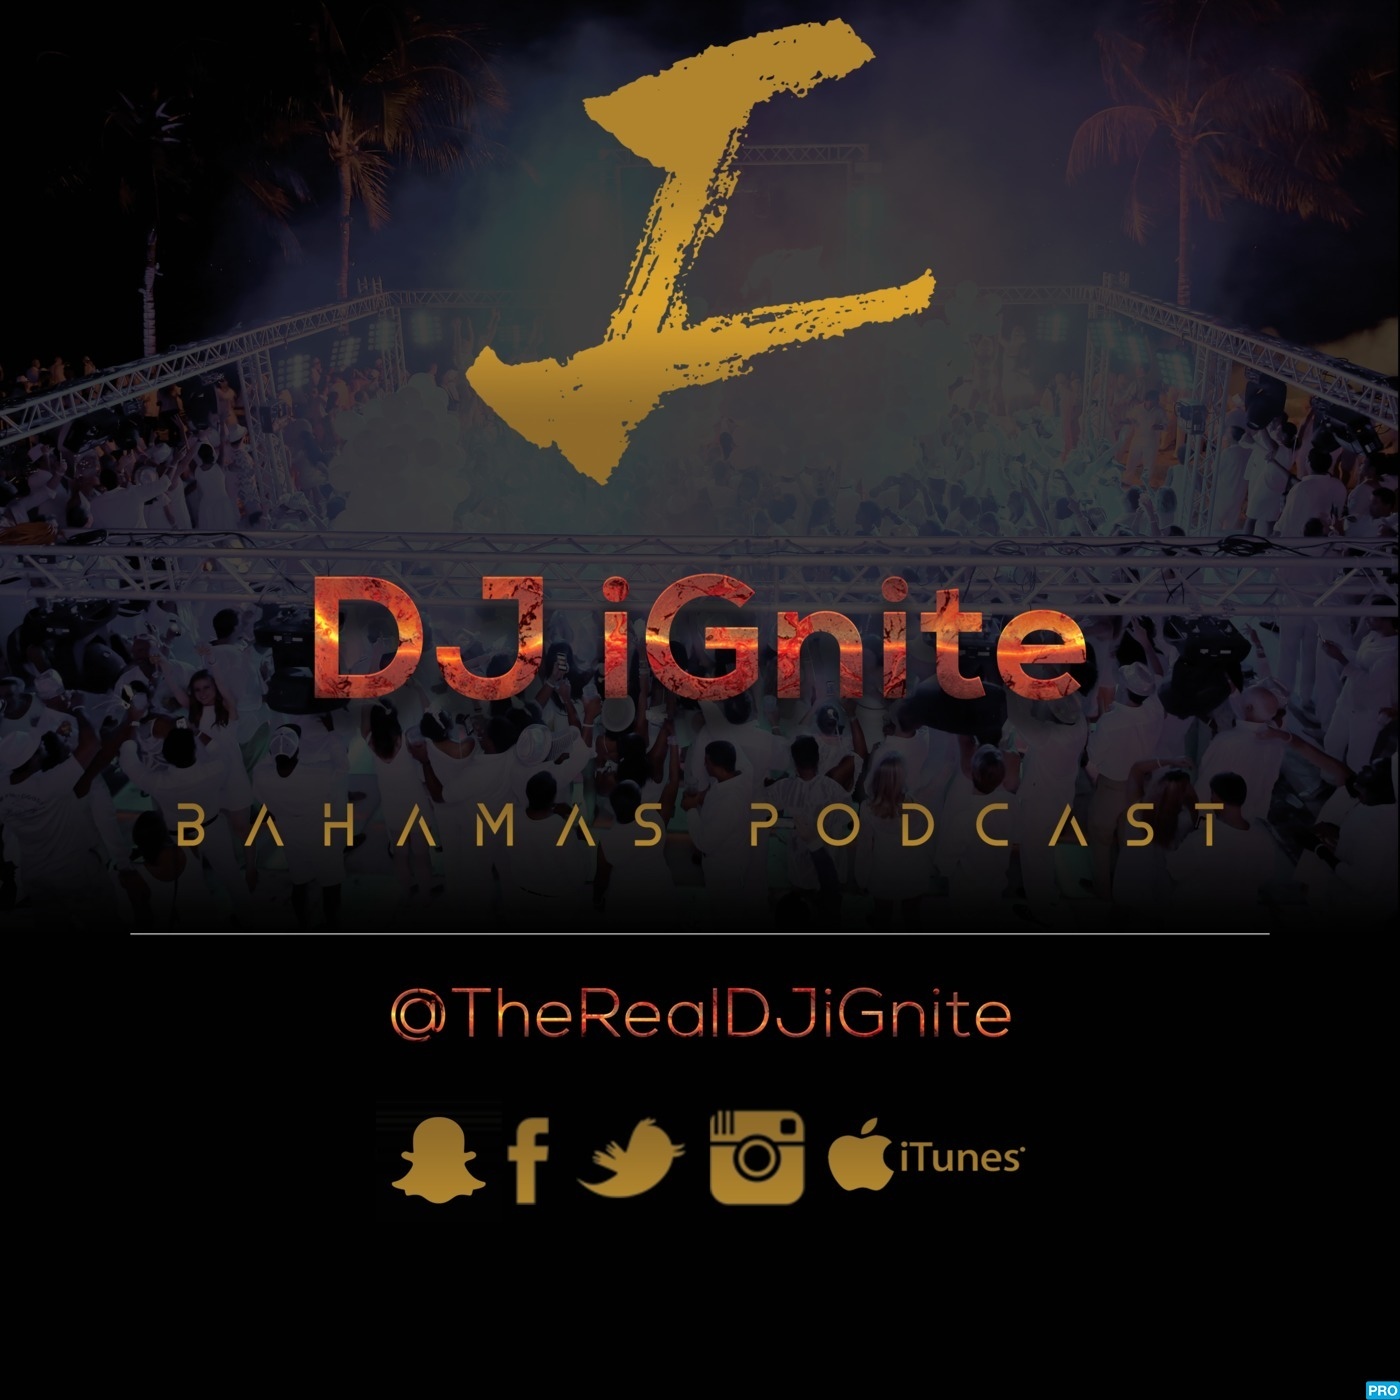 DJ iGnite Podcast